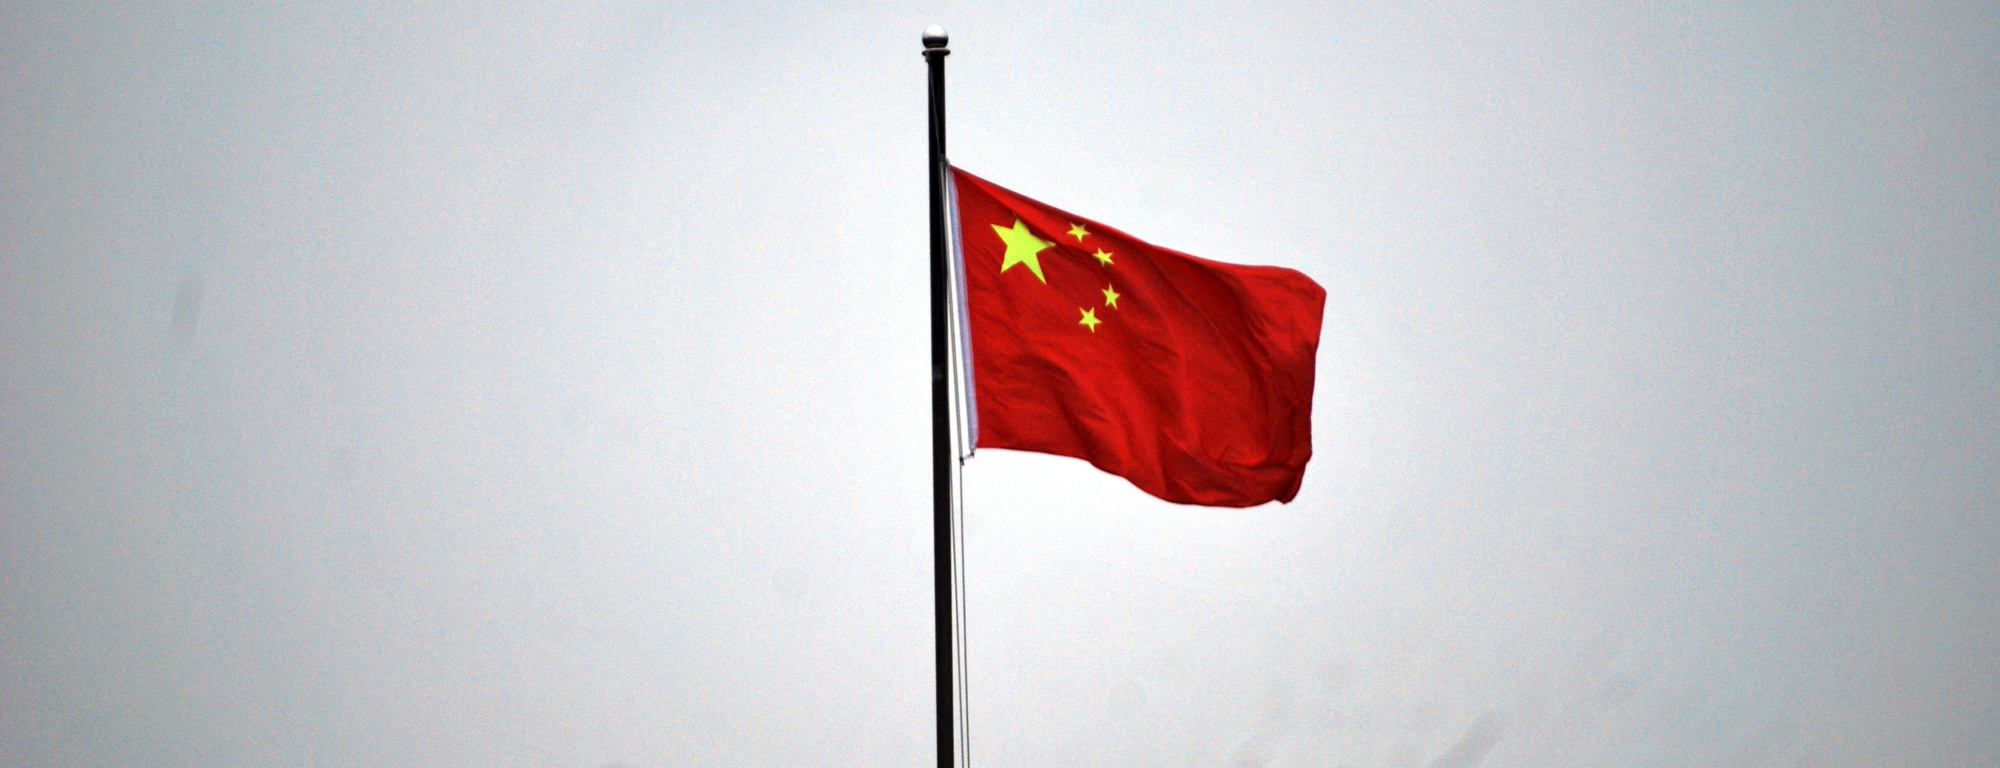 Chinese-flag-with-the-stars